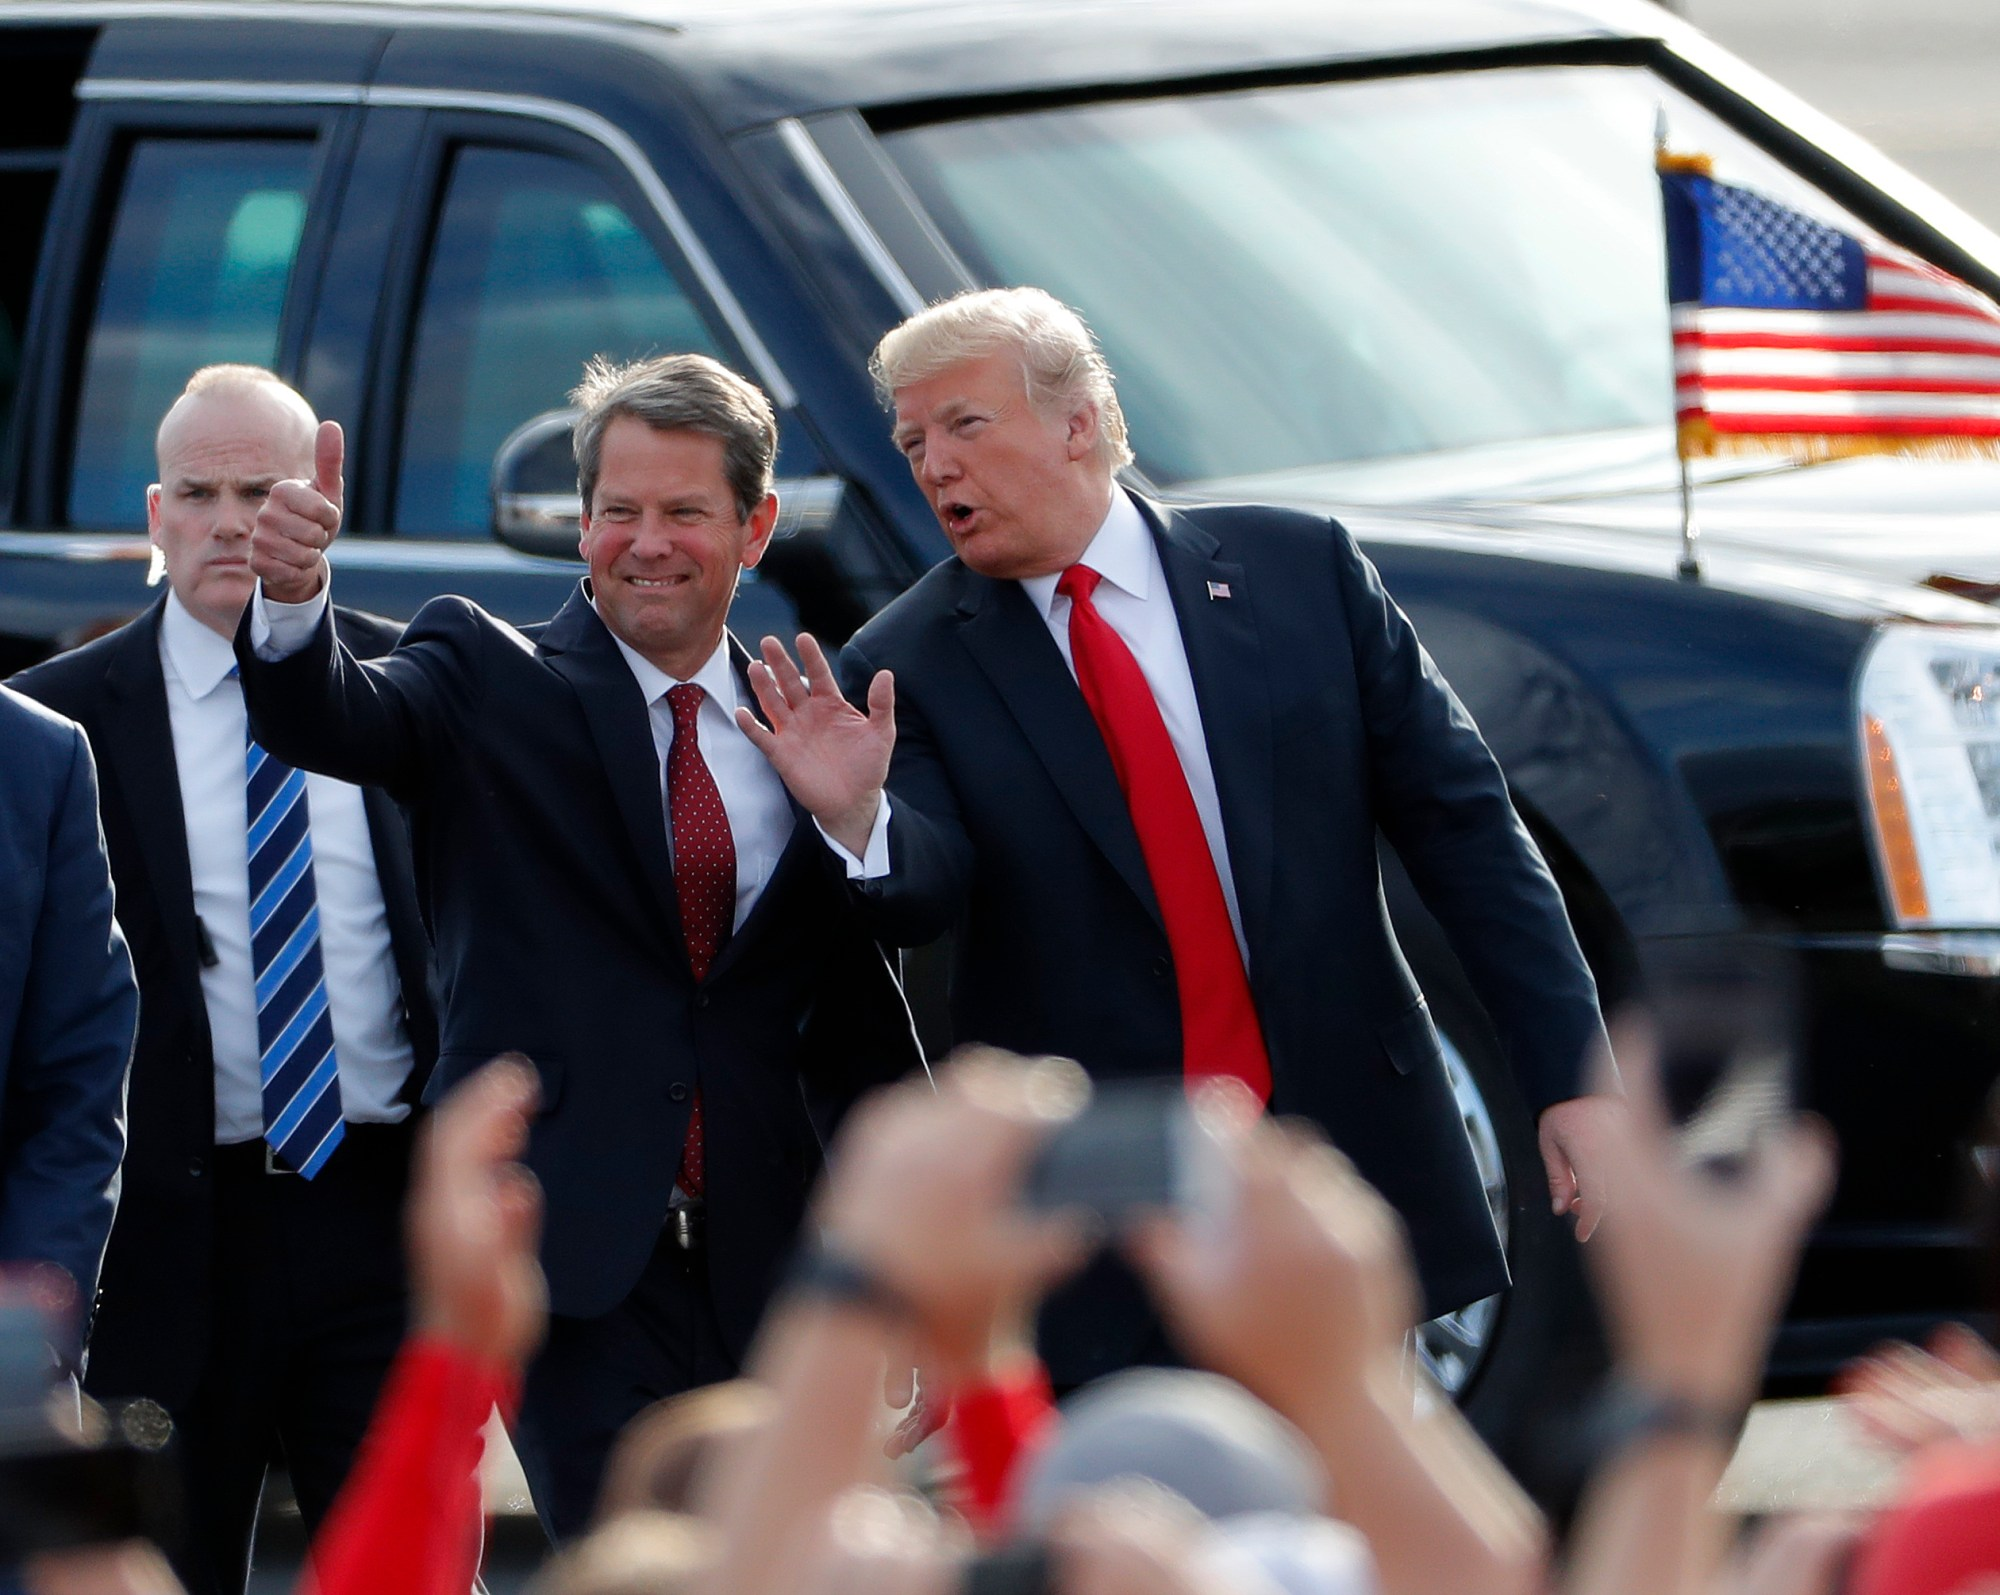 2018 Top Stories Georgia, Brian Kemp, Donald Trump